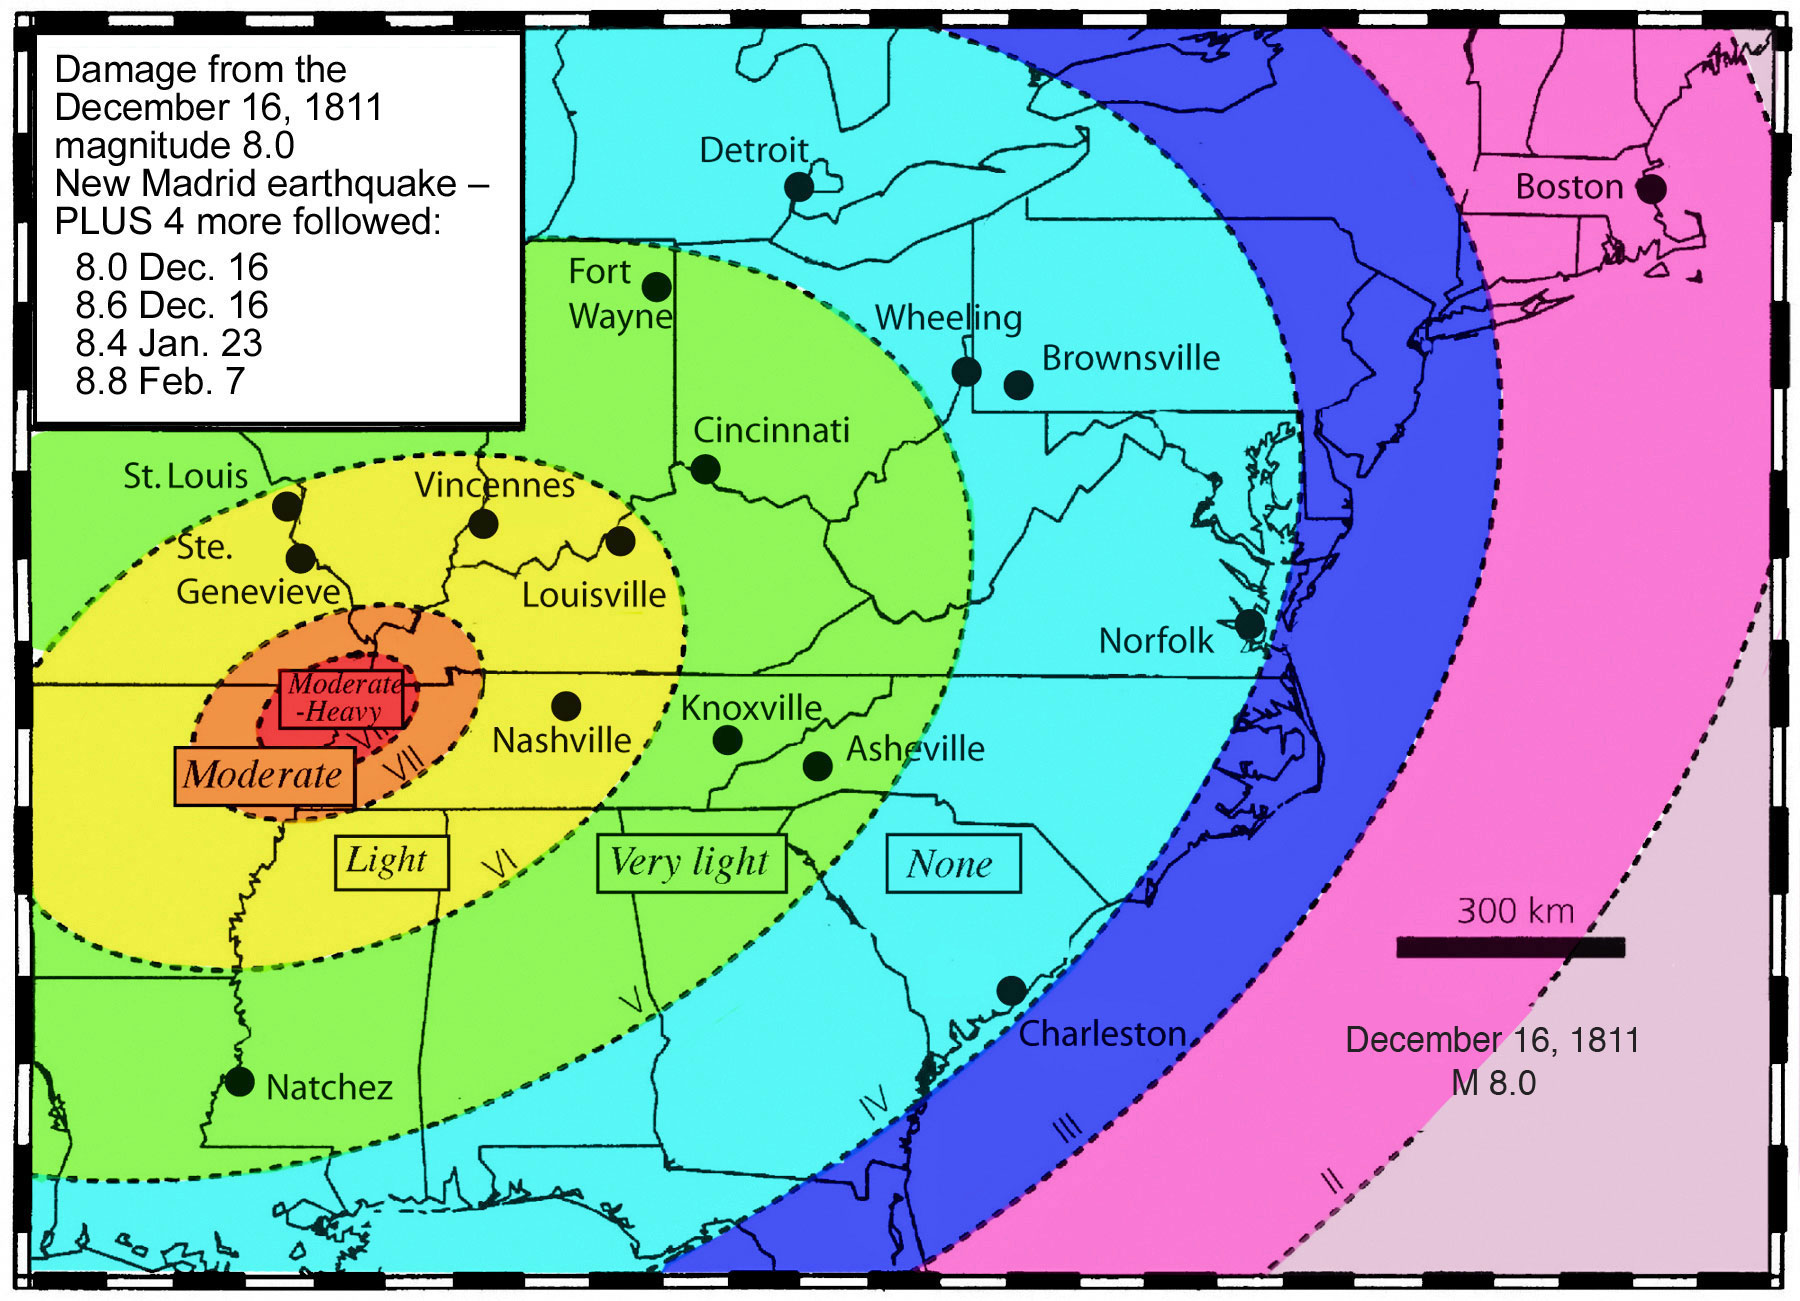 How Many Will In The New Madrid Earthquake Cleveland Etc Be Calm Amp Prepare Amp Pray Away